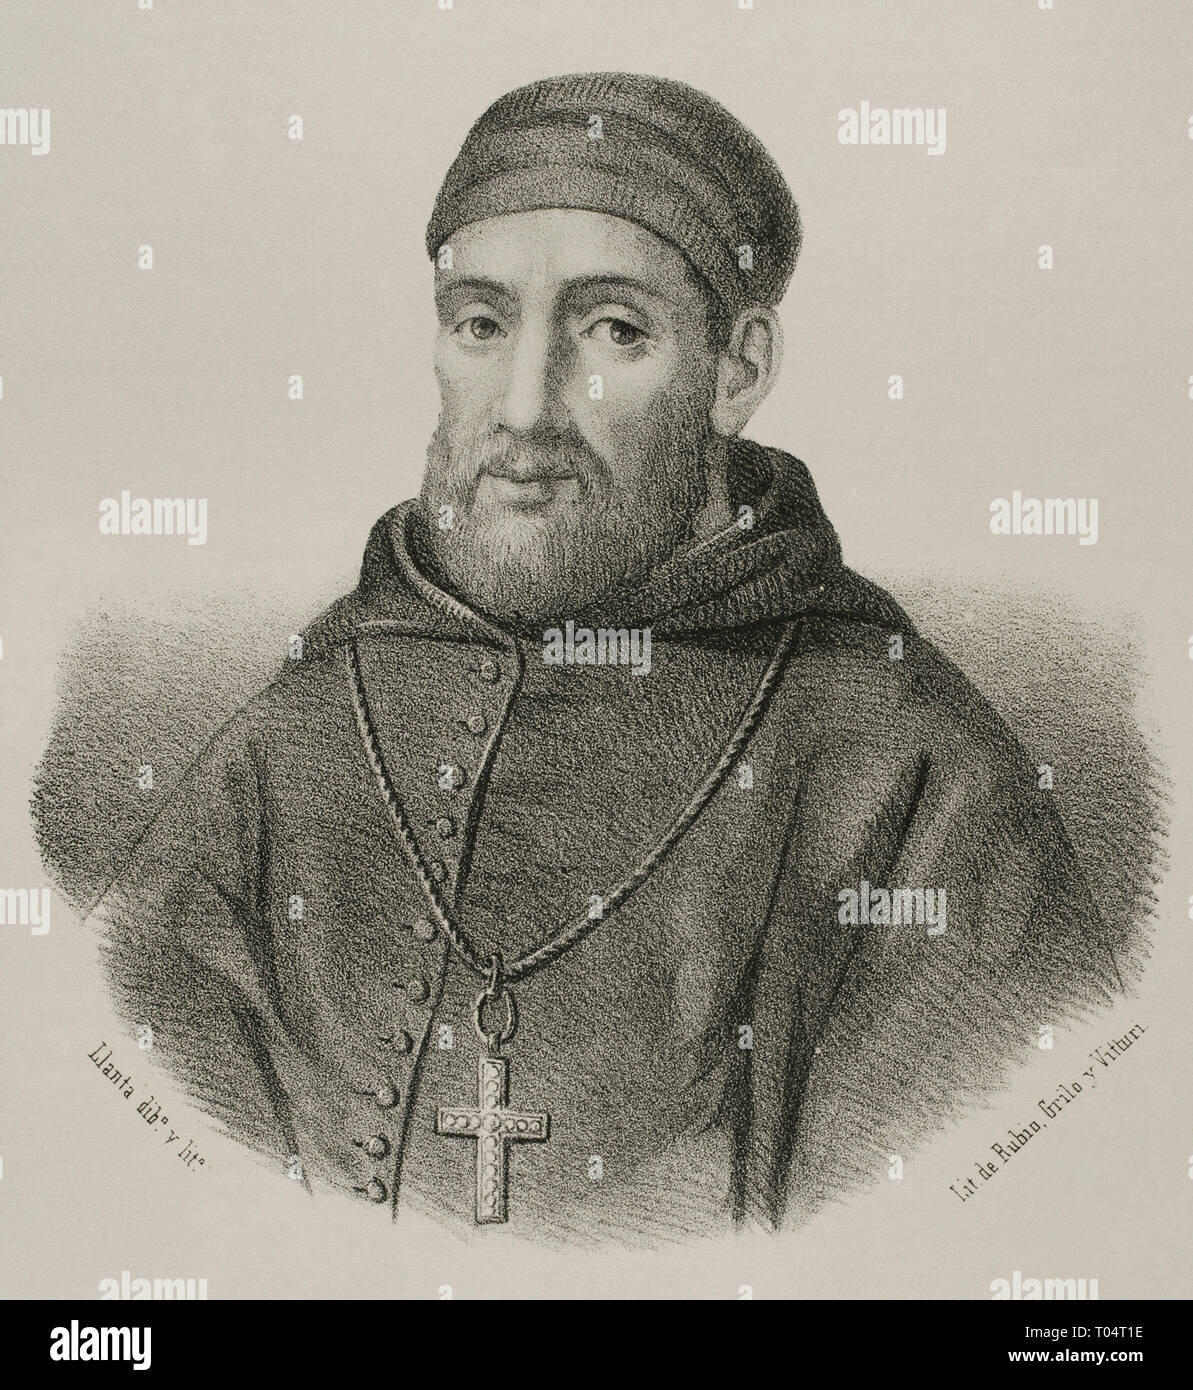 Bartolome Carranza (1503-1576). Navarrese priest,  archbishop and theologian, very influential during the Council of Trento and in the restoration of Roman Catholicism in England. Portrait. Lithography. Drawing by Llanta (1839-1904). Cronica General de España, Historia Ilustrada y Descriptiva de sus Provincias. Extremadura, 1870. - Stock Image